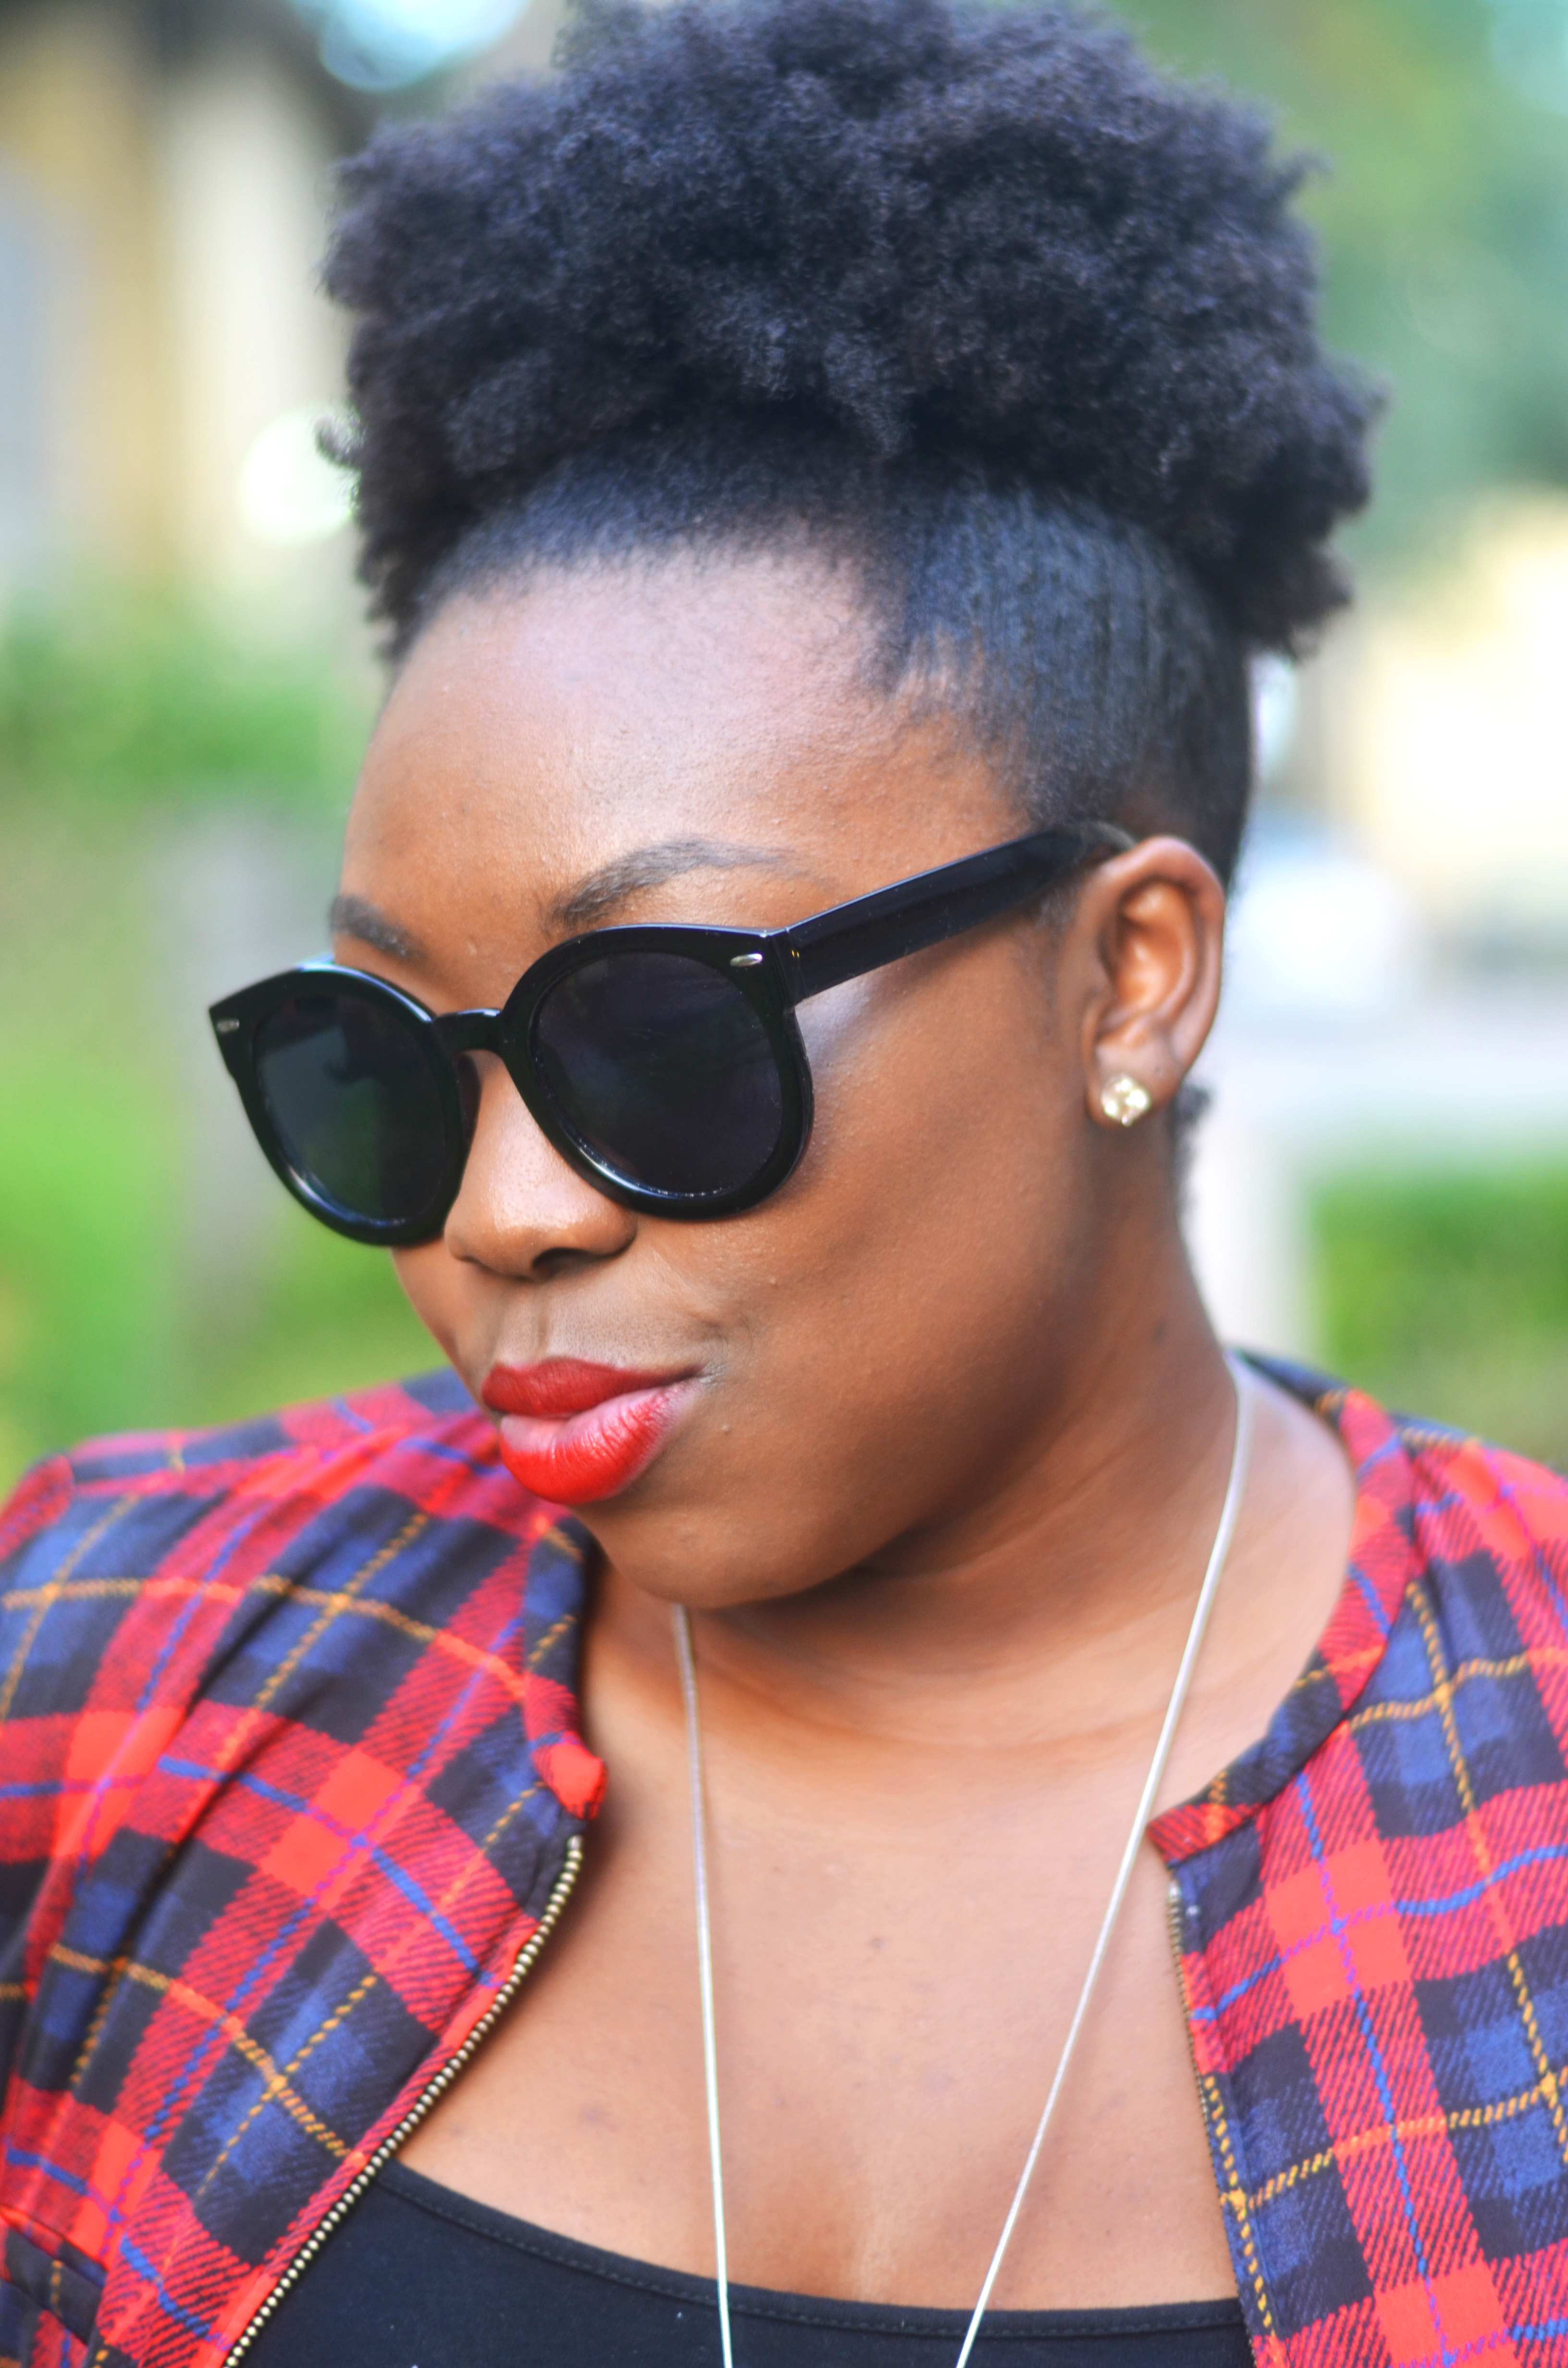 Red lips and afro puff